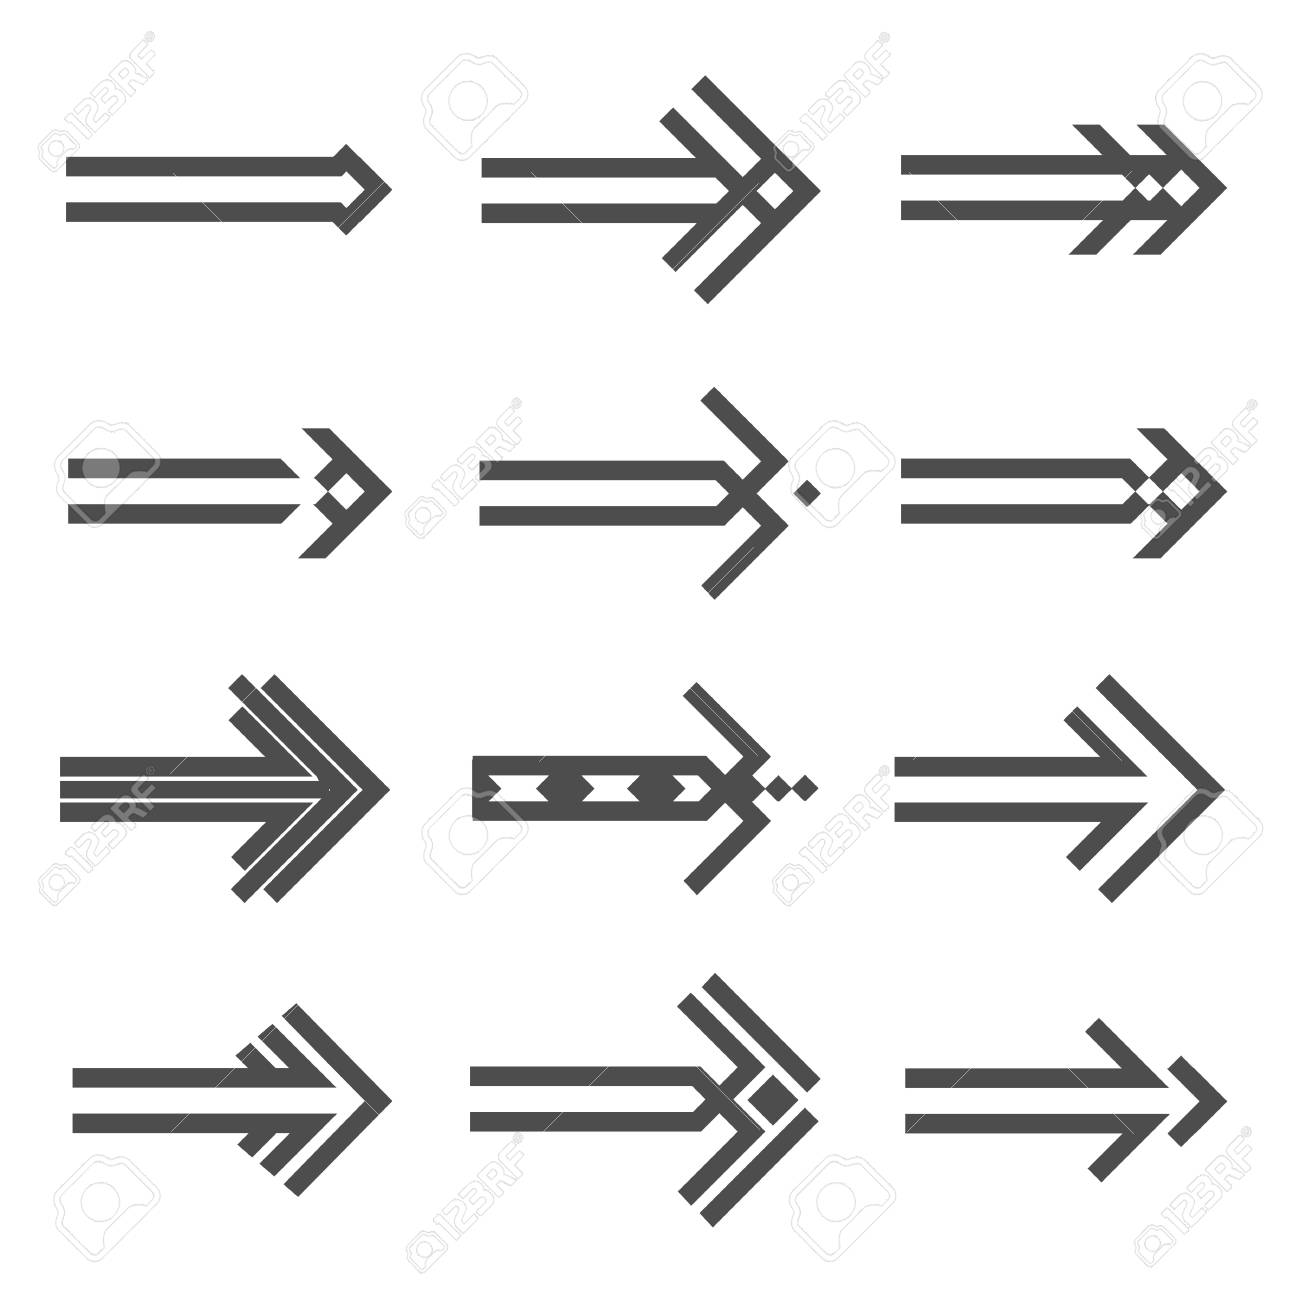 Set of various arrows sign Stock Vector - 17911703